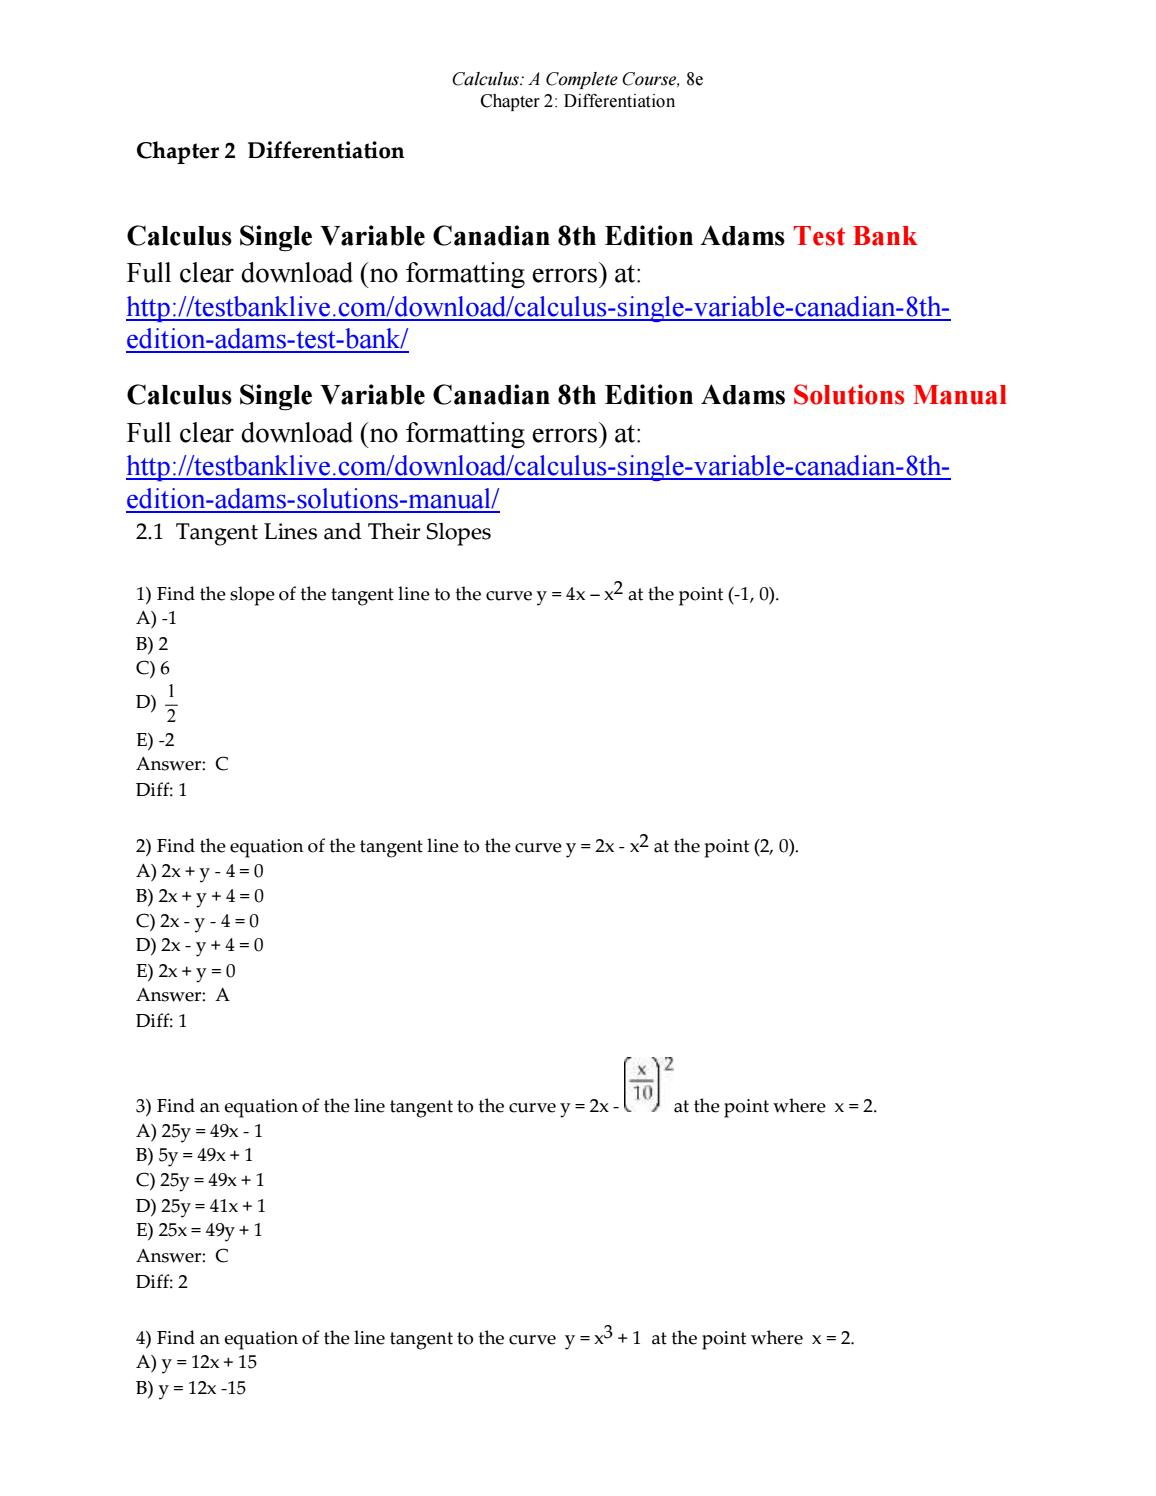 Calculus single variable canadian 8th edition adams test bank by